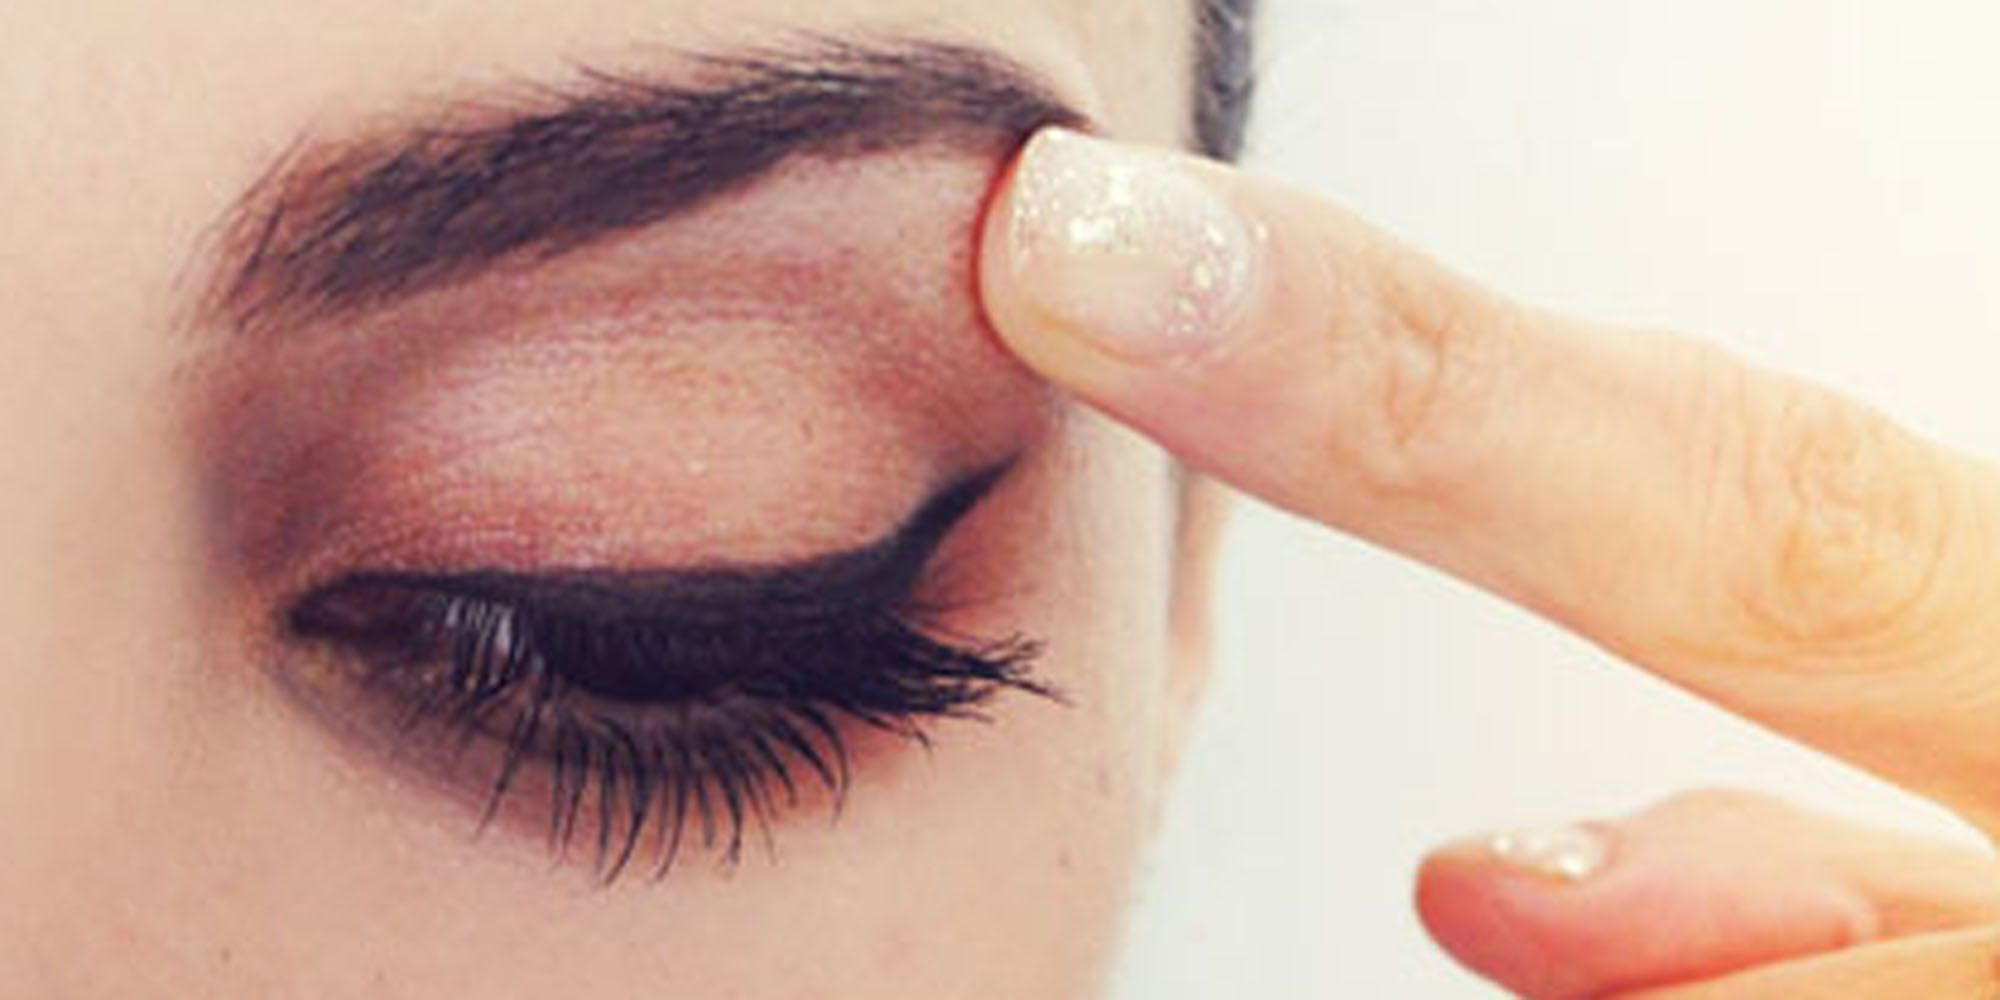 This White Eyebrow Highlighter Trick Makes Your Eyes Look